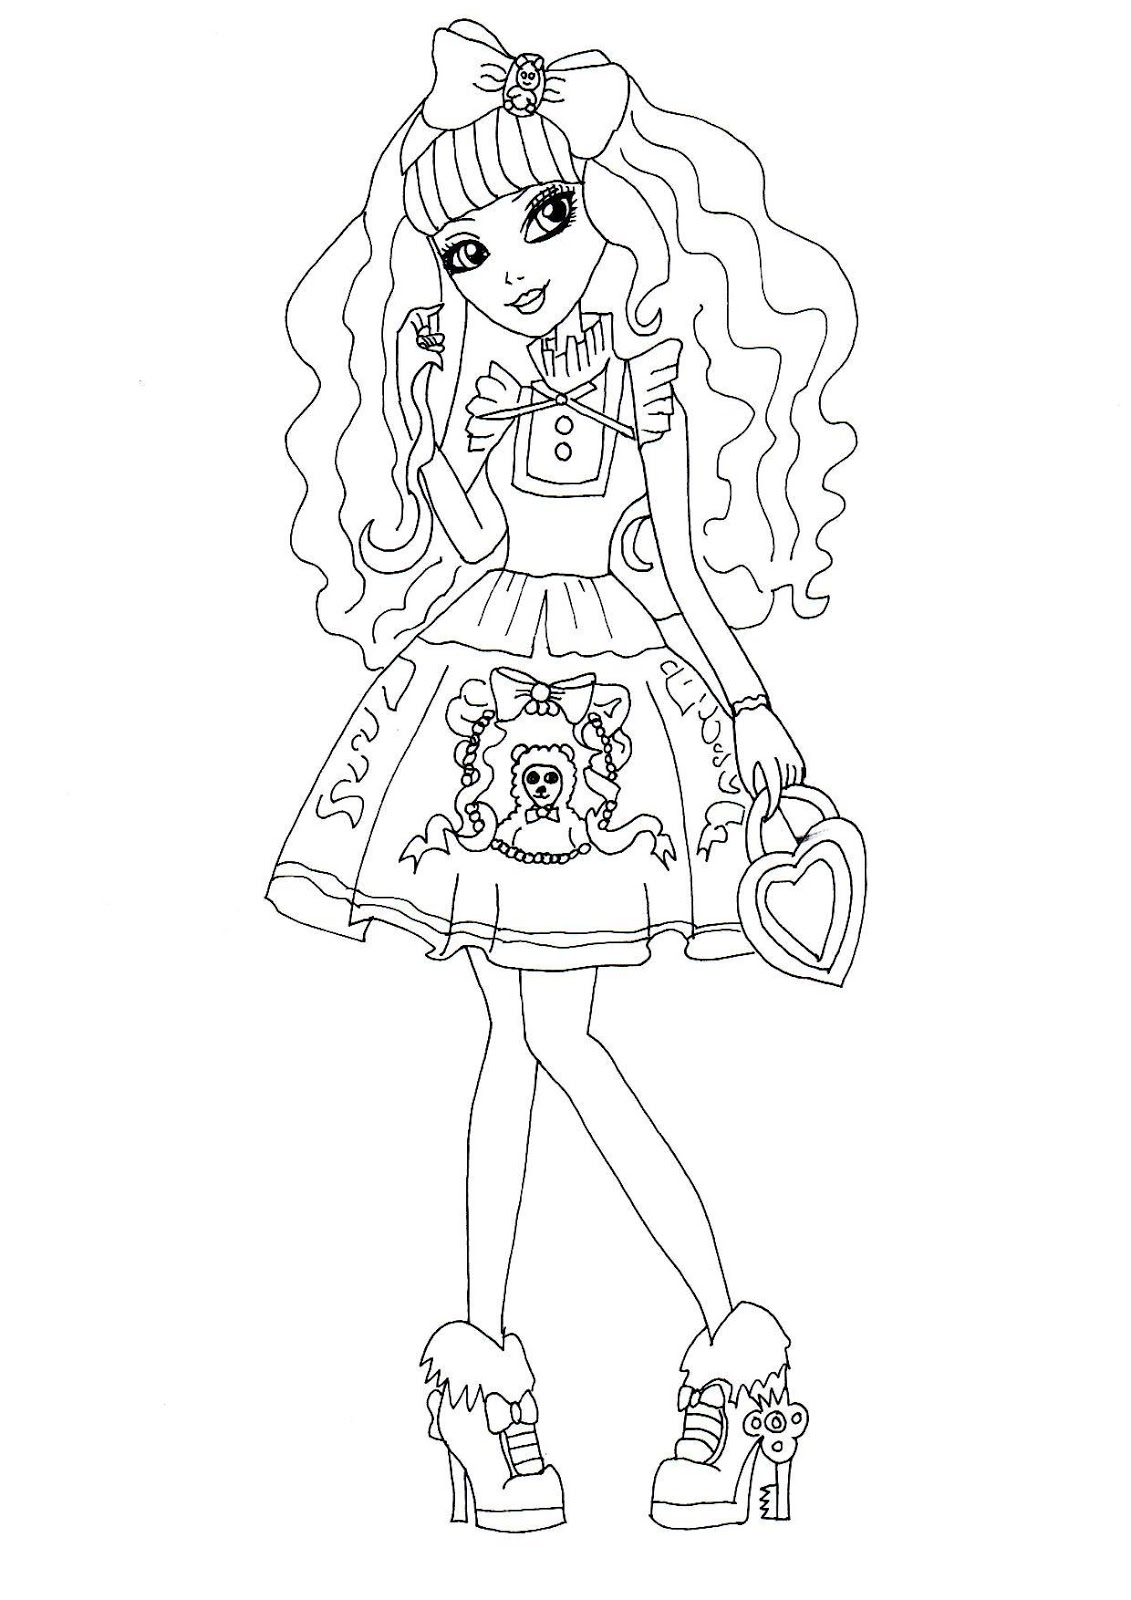 Free Printable Ever After High Coloring Pages: September 2013